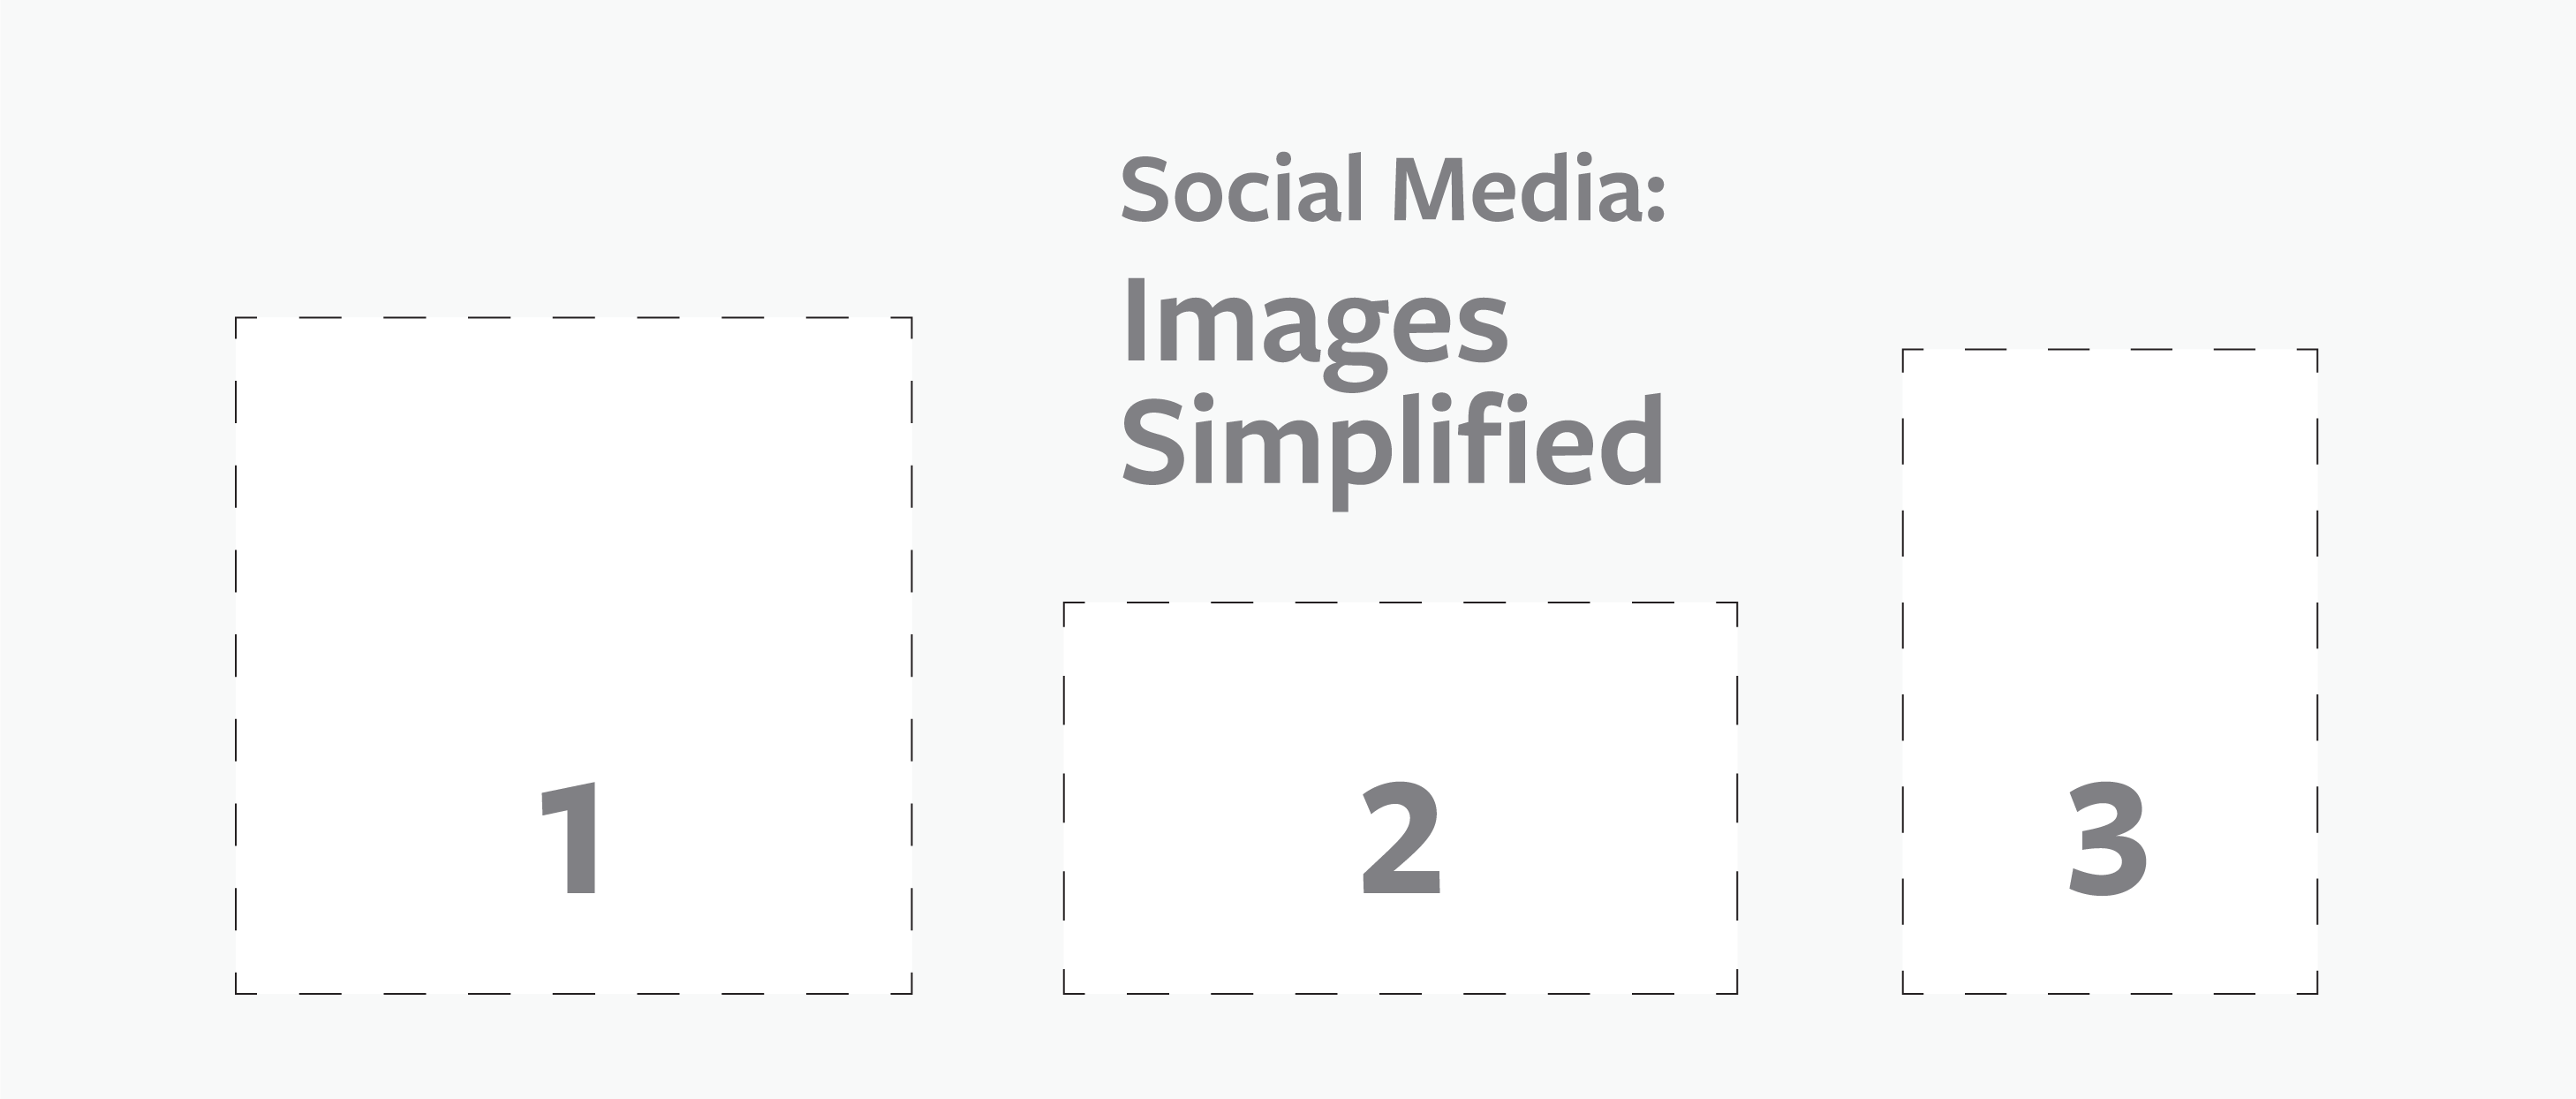 Posting Images, Easy as One, Two, Three